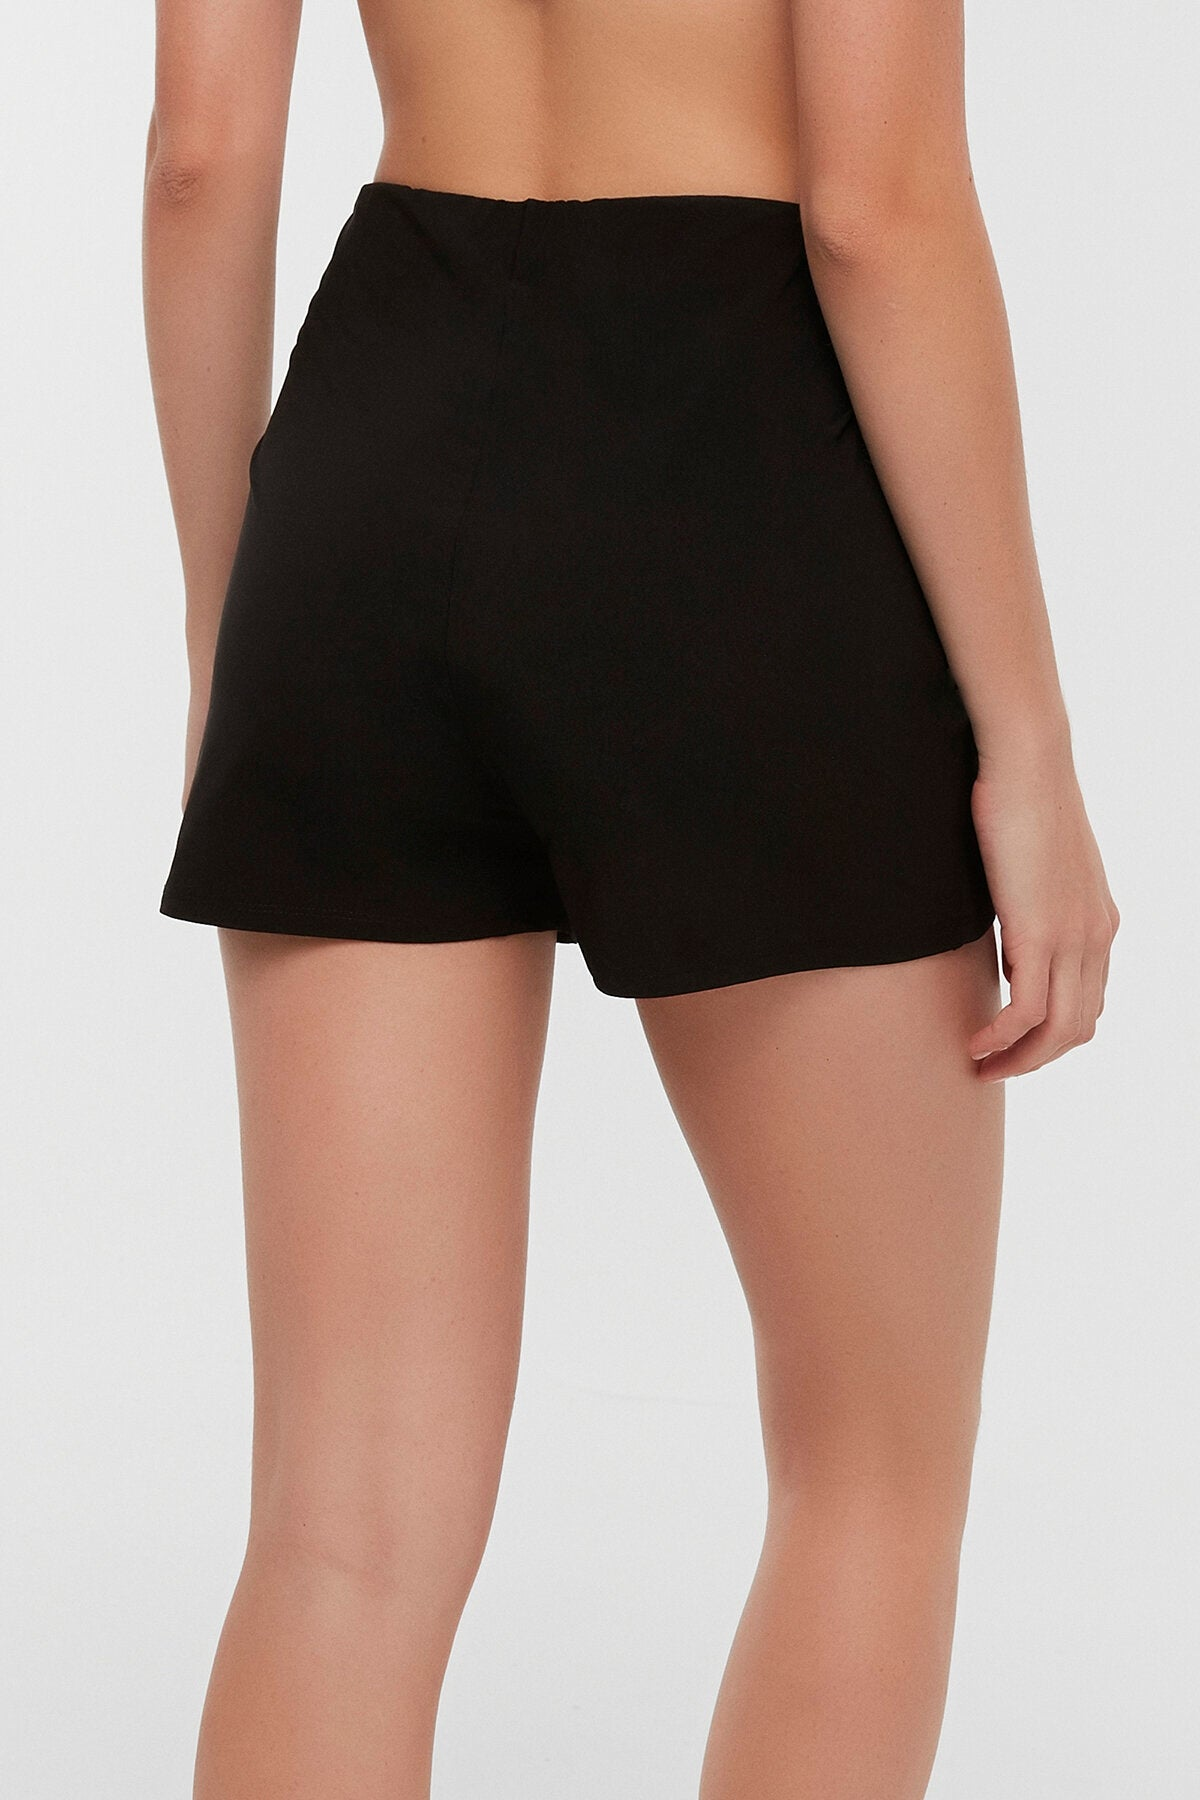 BEACH SKORT IN BLACK